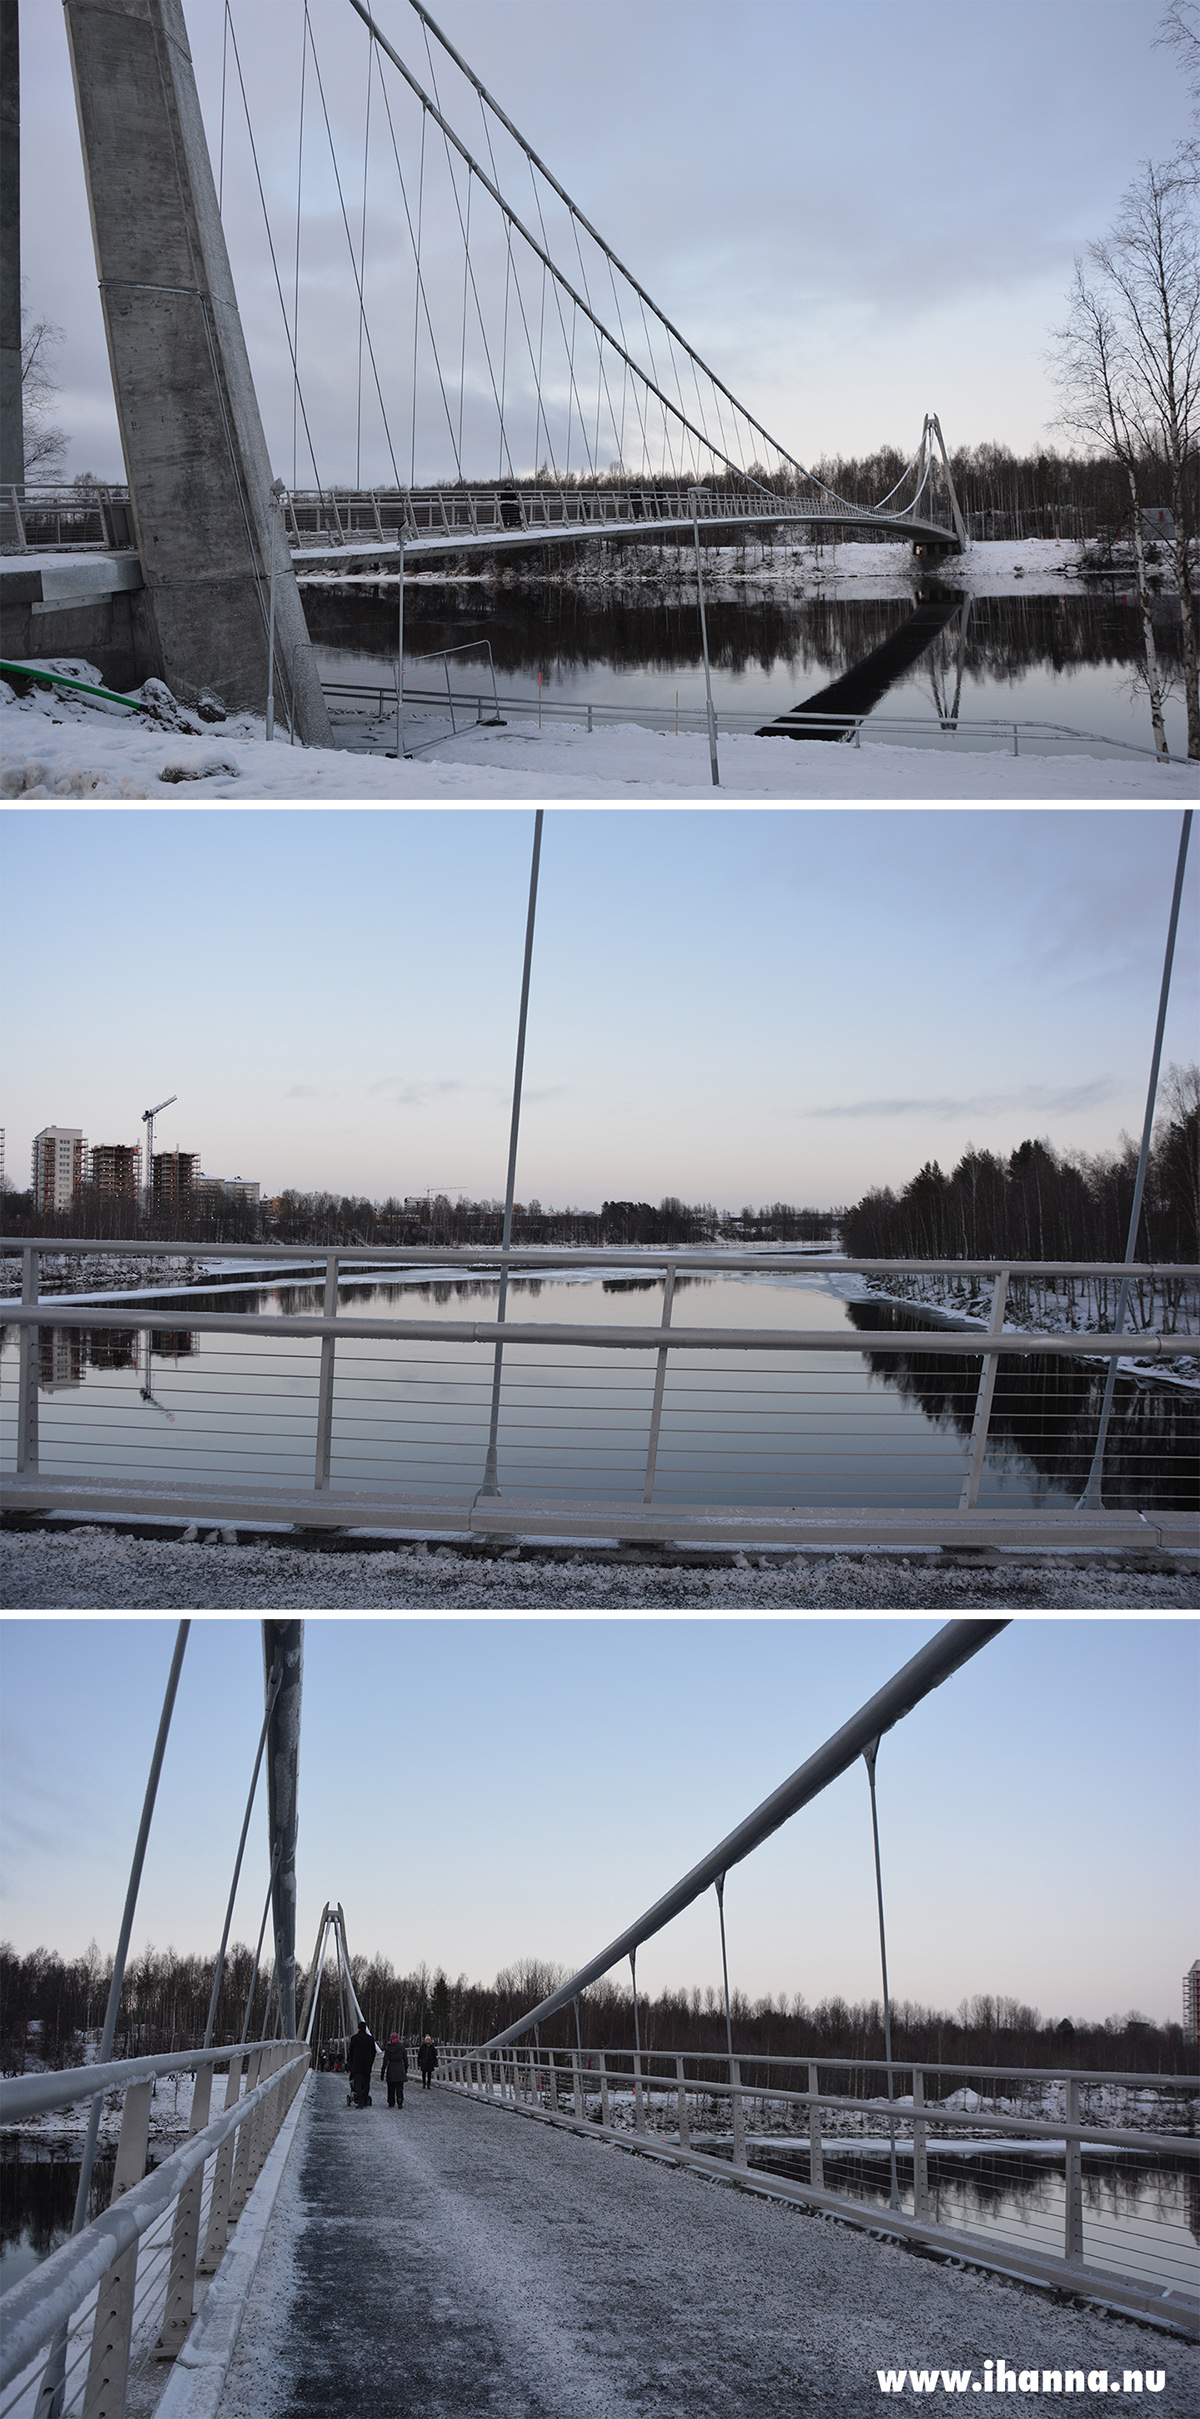 New bridge in Umeå, Sweden over the umeälv - December 2019 - Photo copyright Hanna Andersson